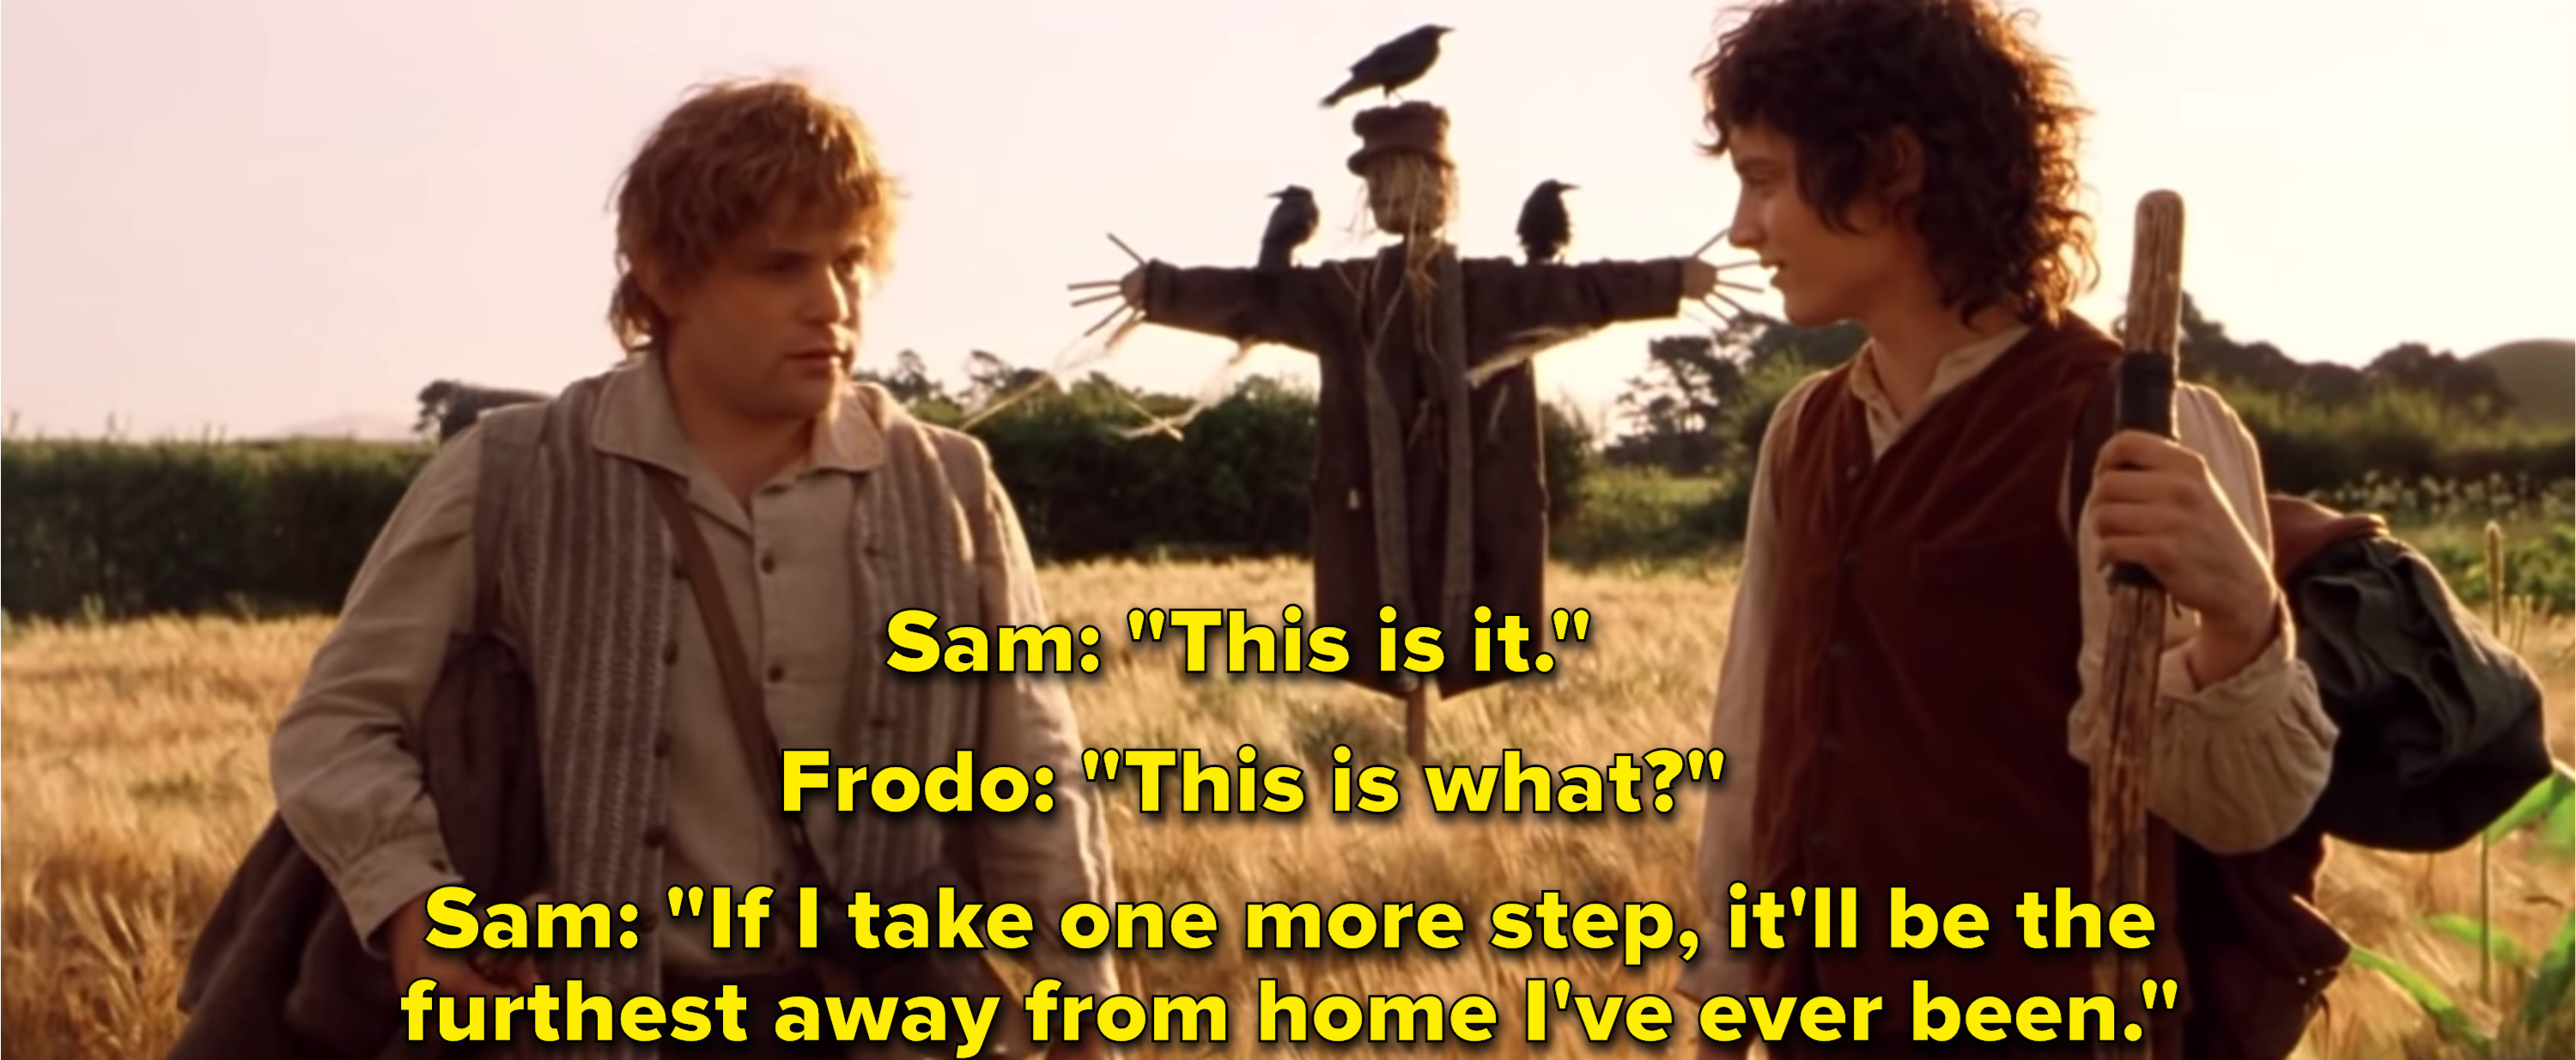 """Elijah Wood as Frodo Baggins and Sean Aston as Samwise Gangee in the """"Lord of the Rings"""" series."""